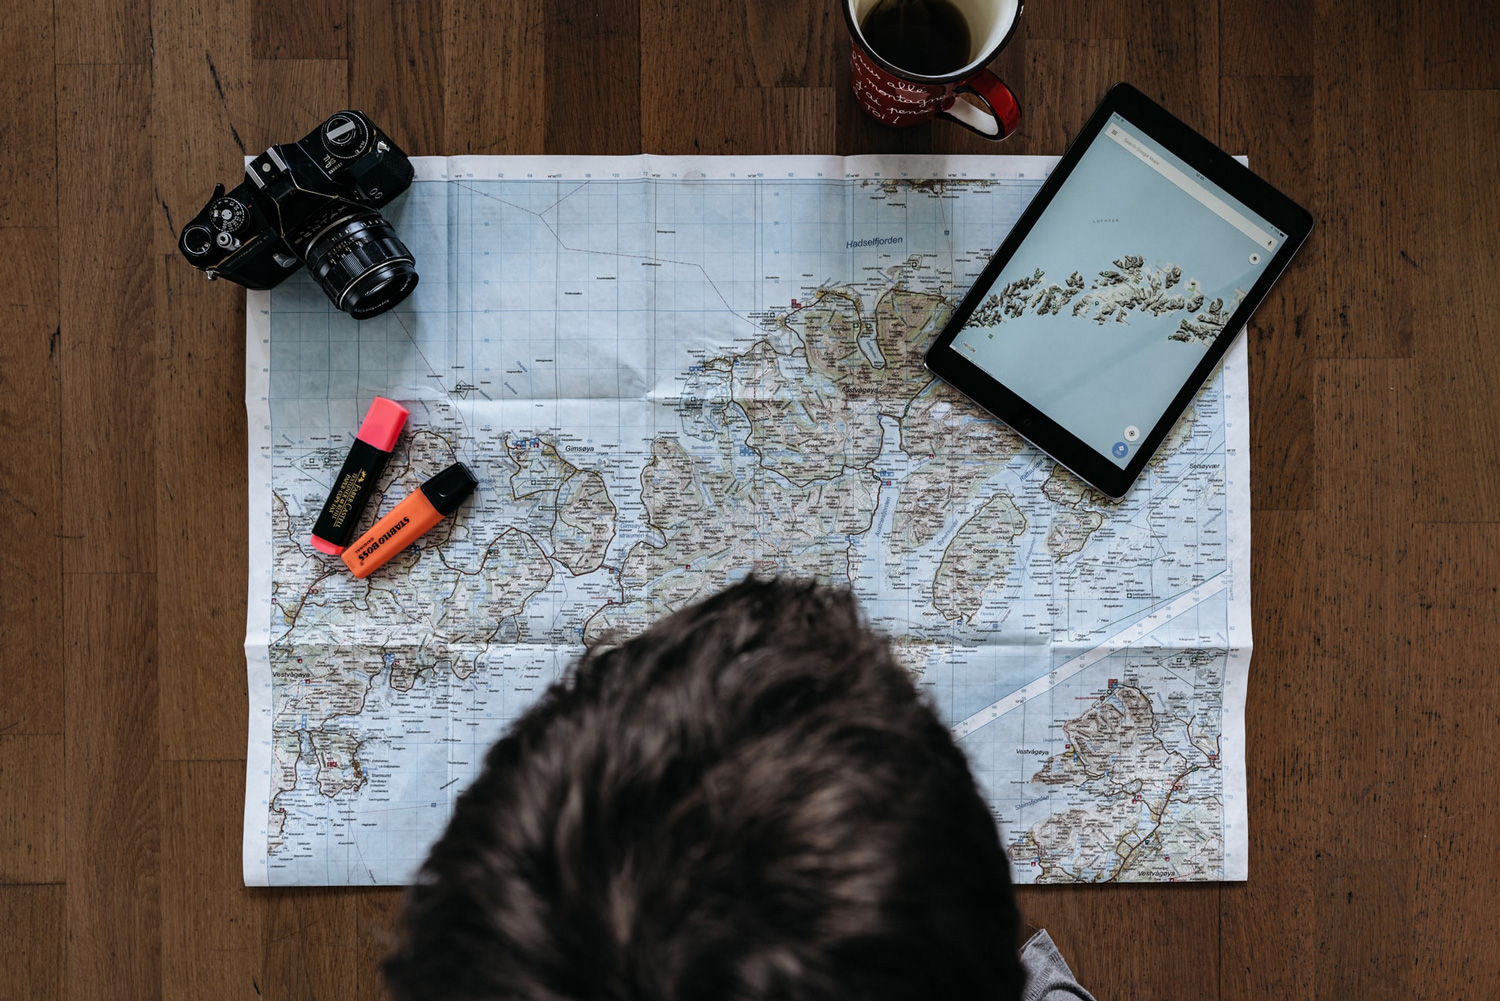 an aerial view of a man looking at a world map that is placed on the table.